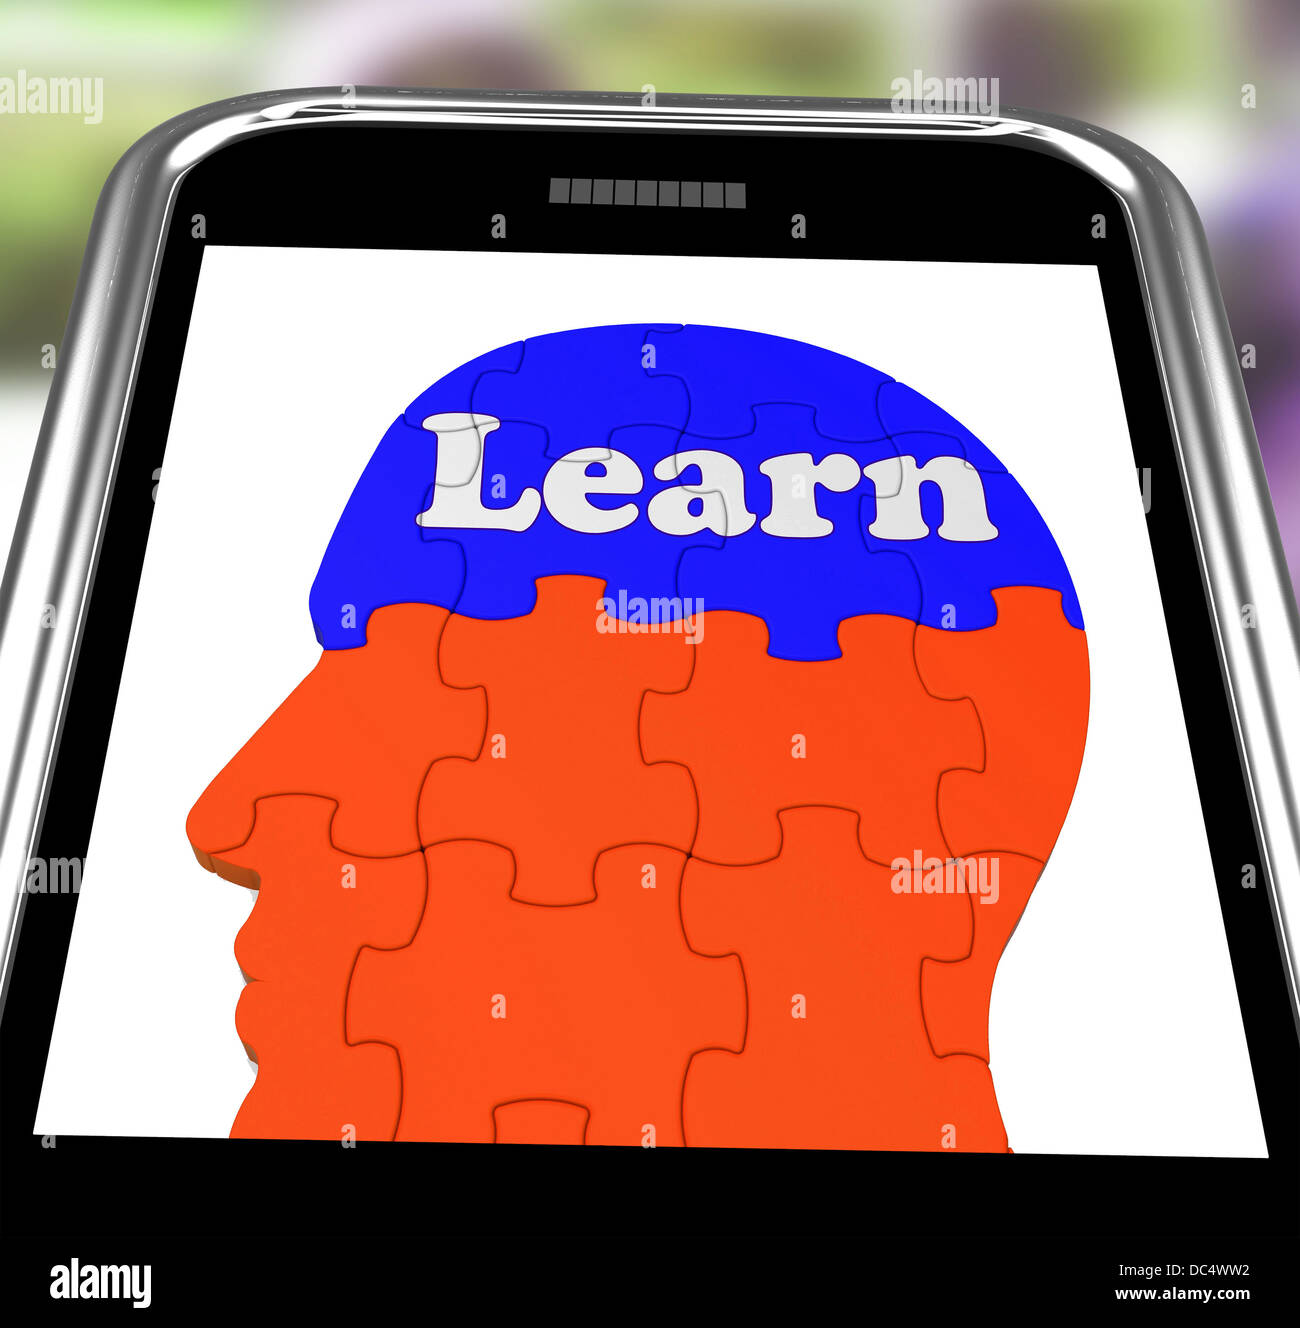 Learn On Brain On Smartphone Showing Human Training - Stock Image